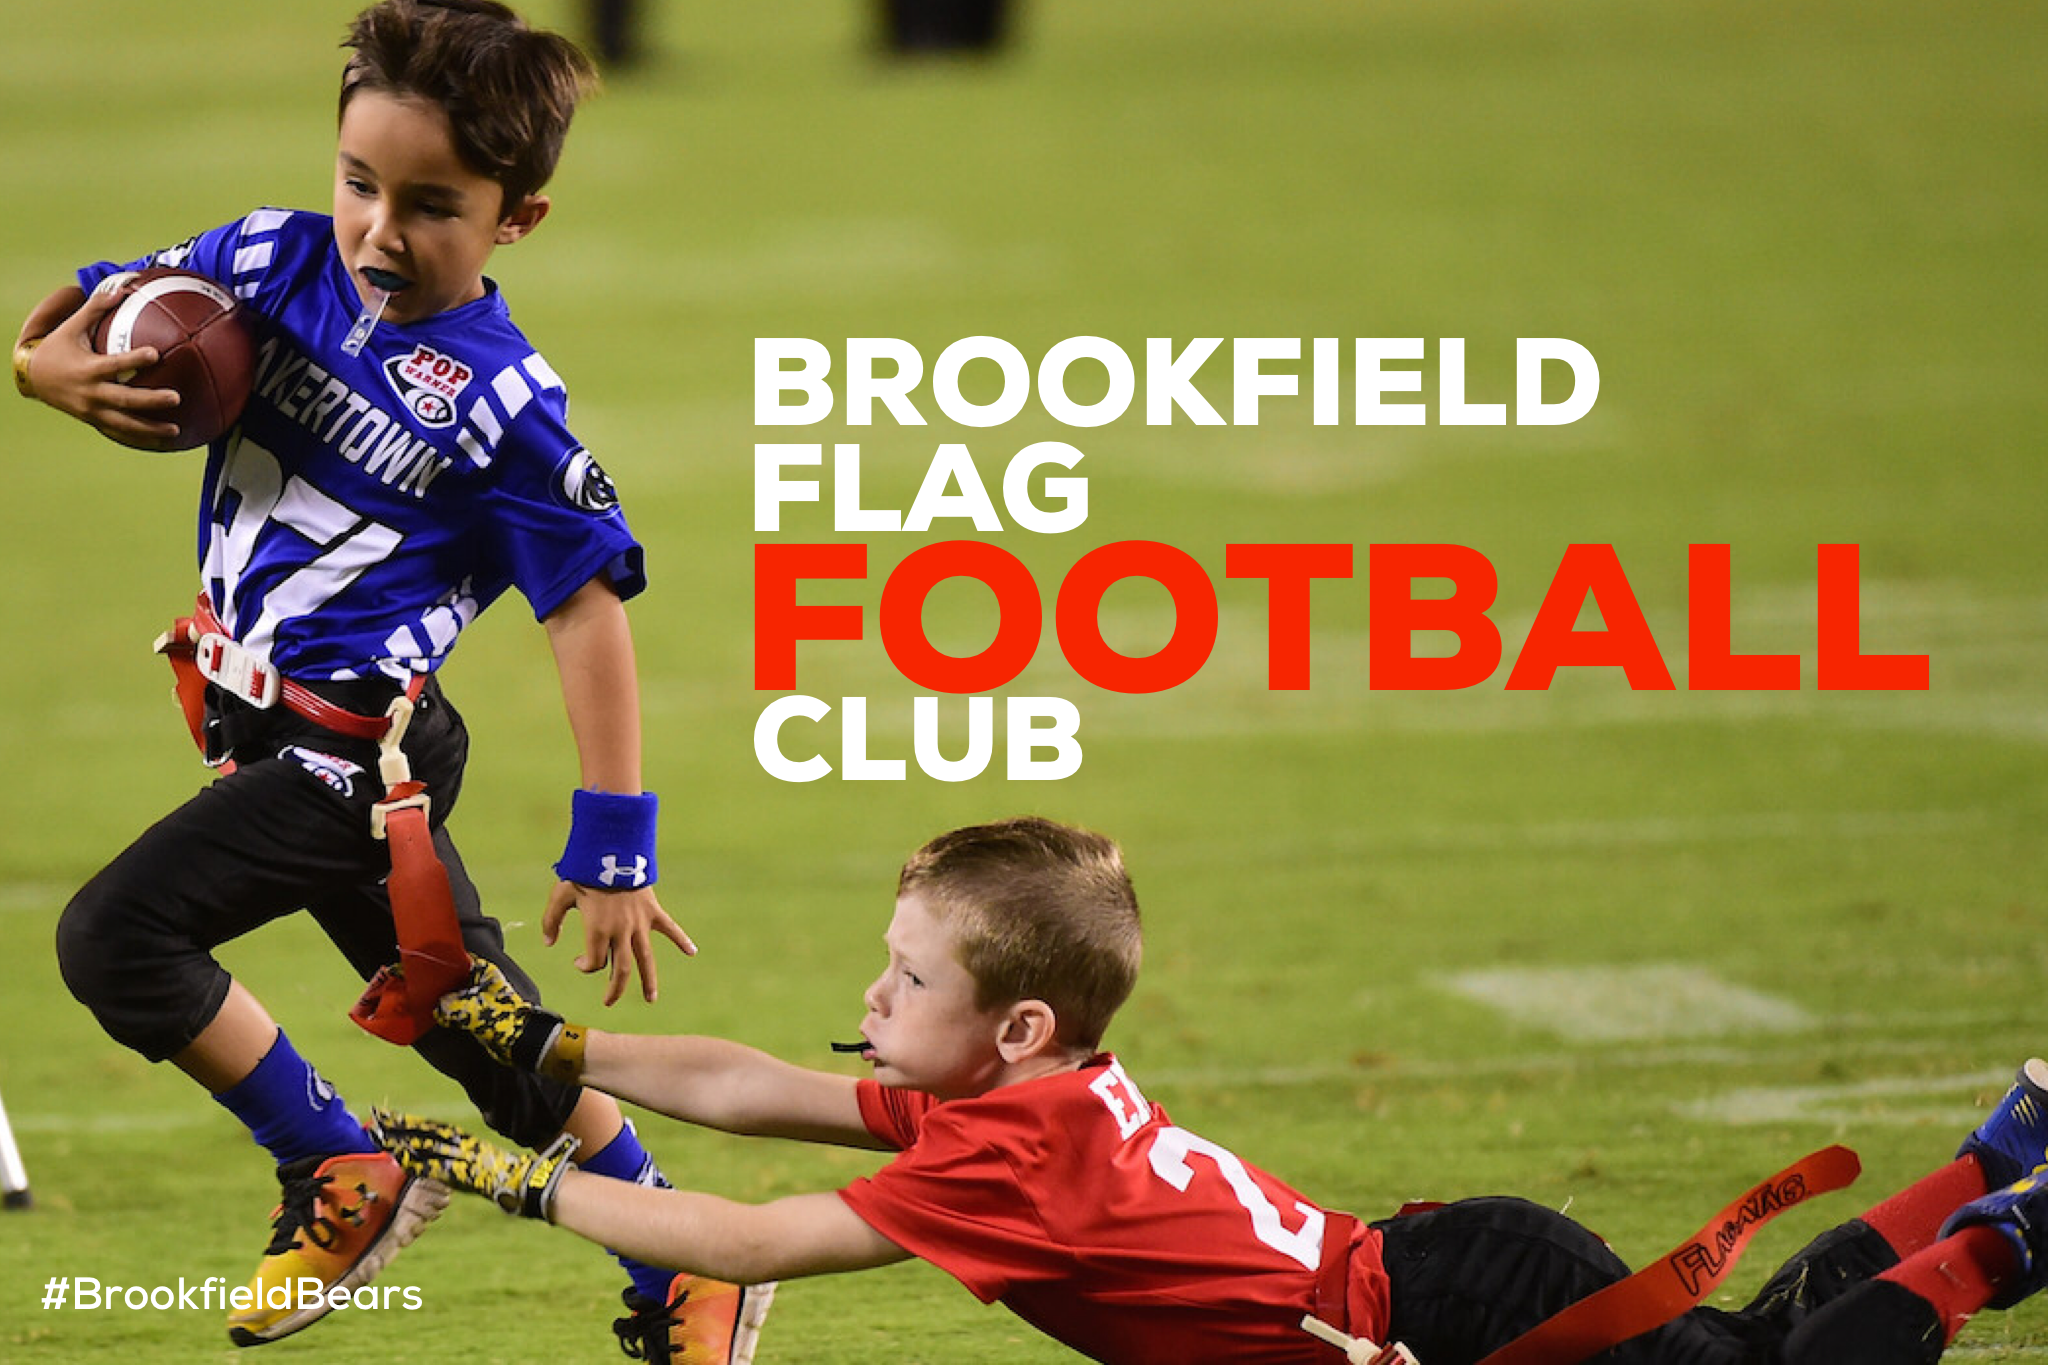 Flag Football Club - Tuesday-Thursday 3:45-5:00pm (4th and 5th grade)Also note that Flag Football Club for grades 2-8 comes in Spring.